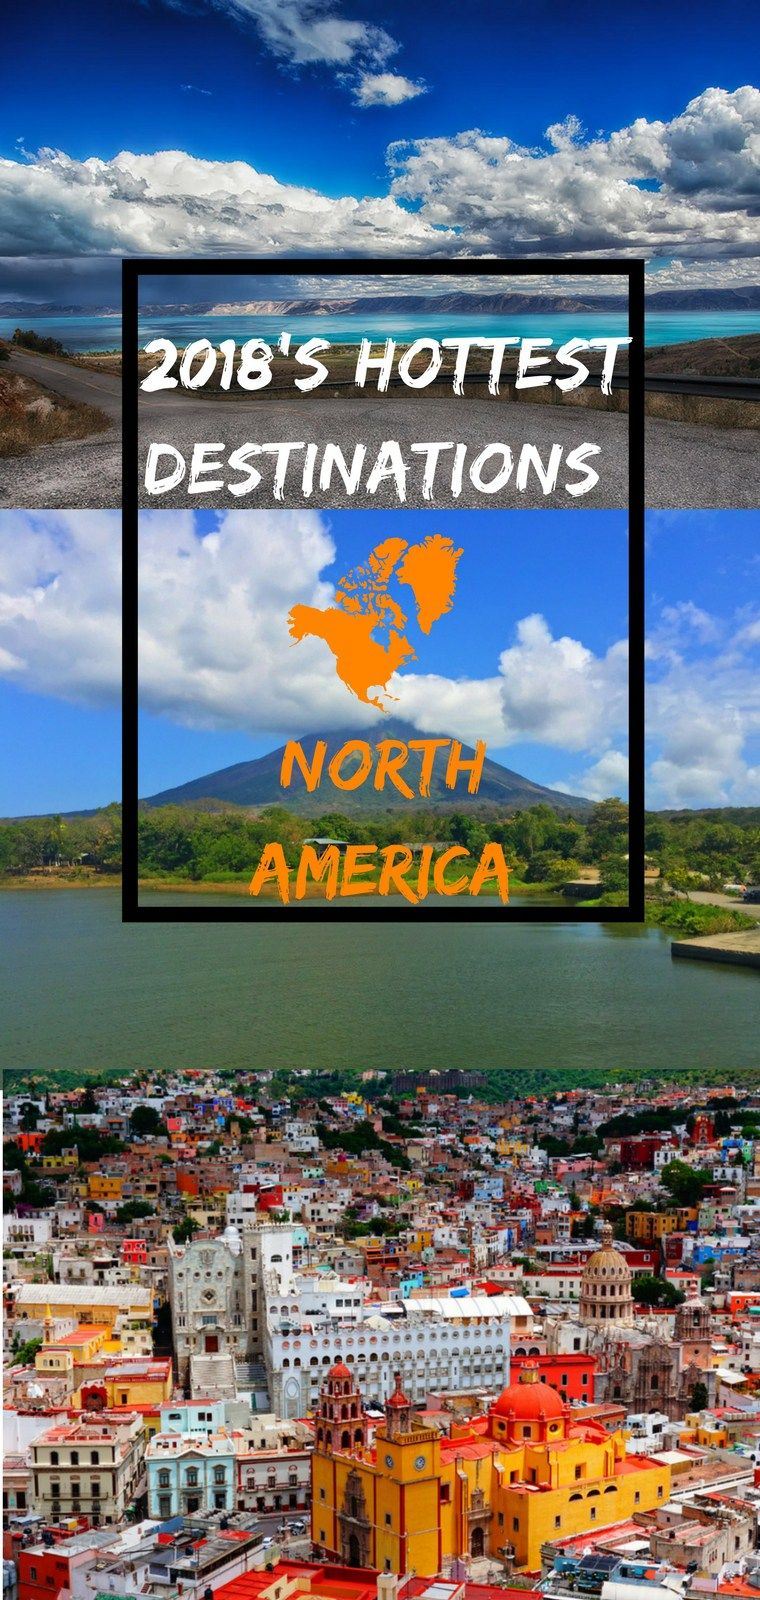 Vacation Destinations in North America (10 Trendy Spots You Can't